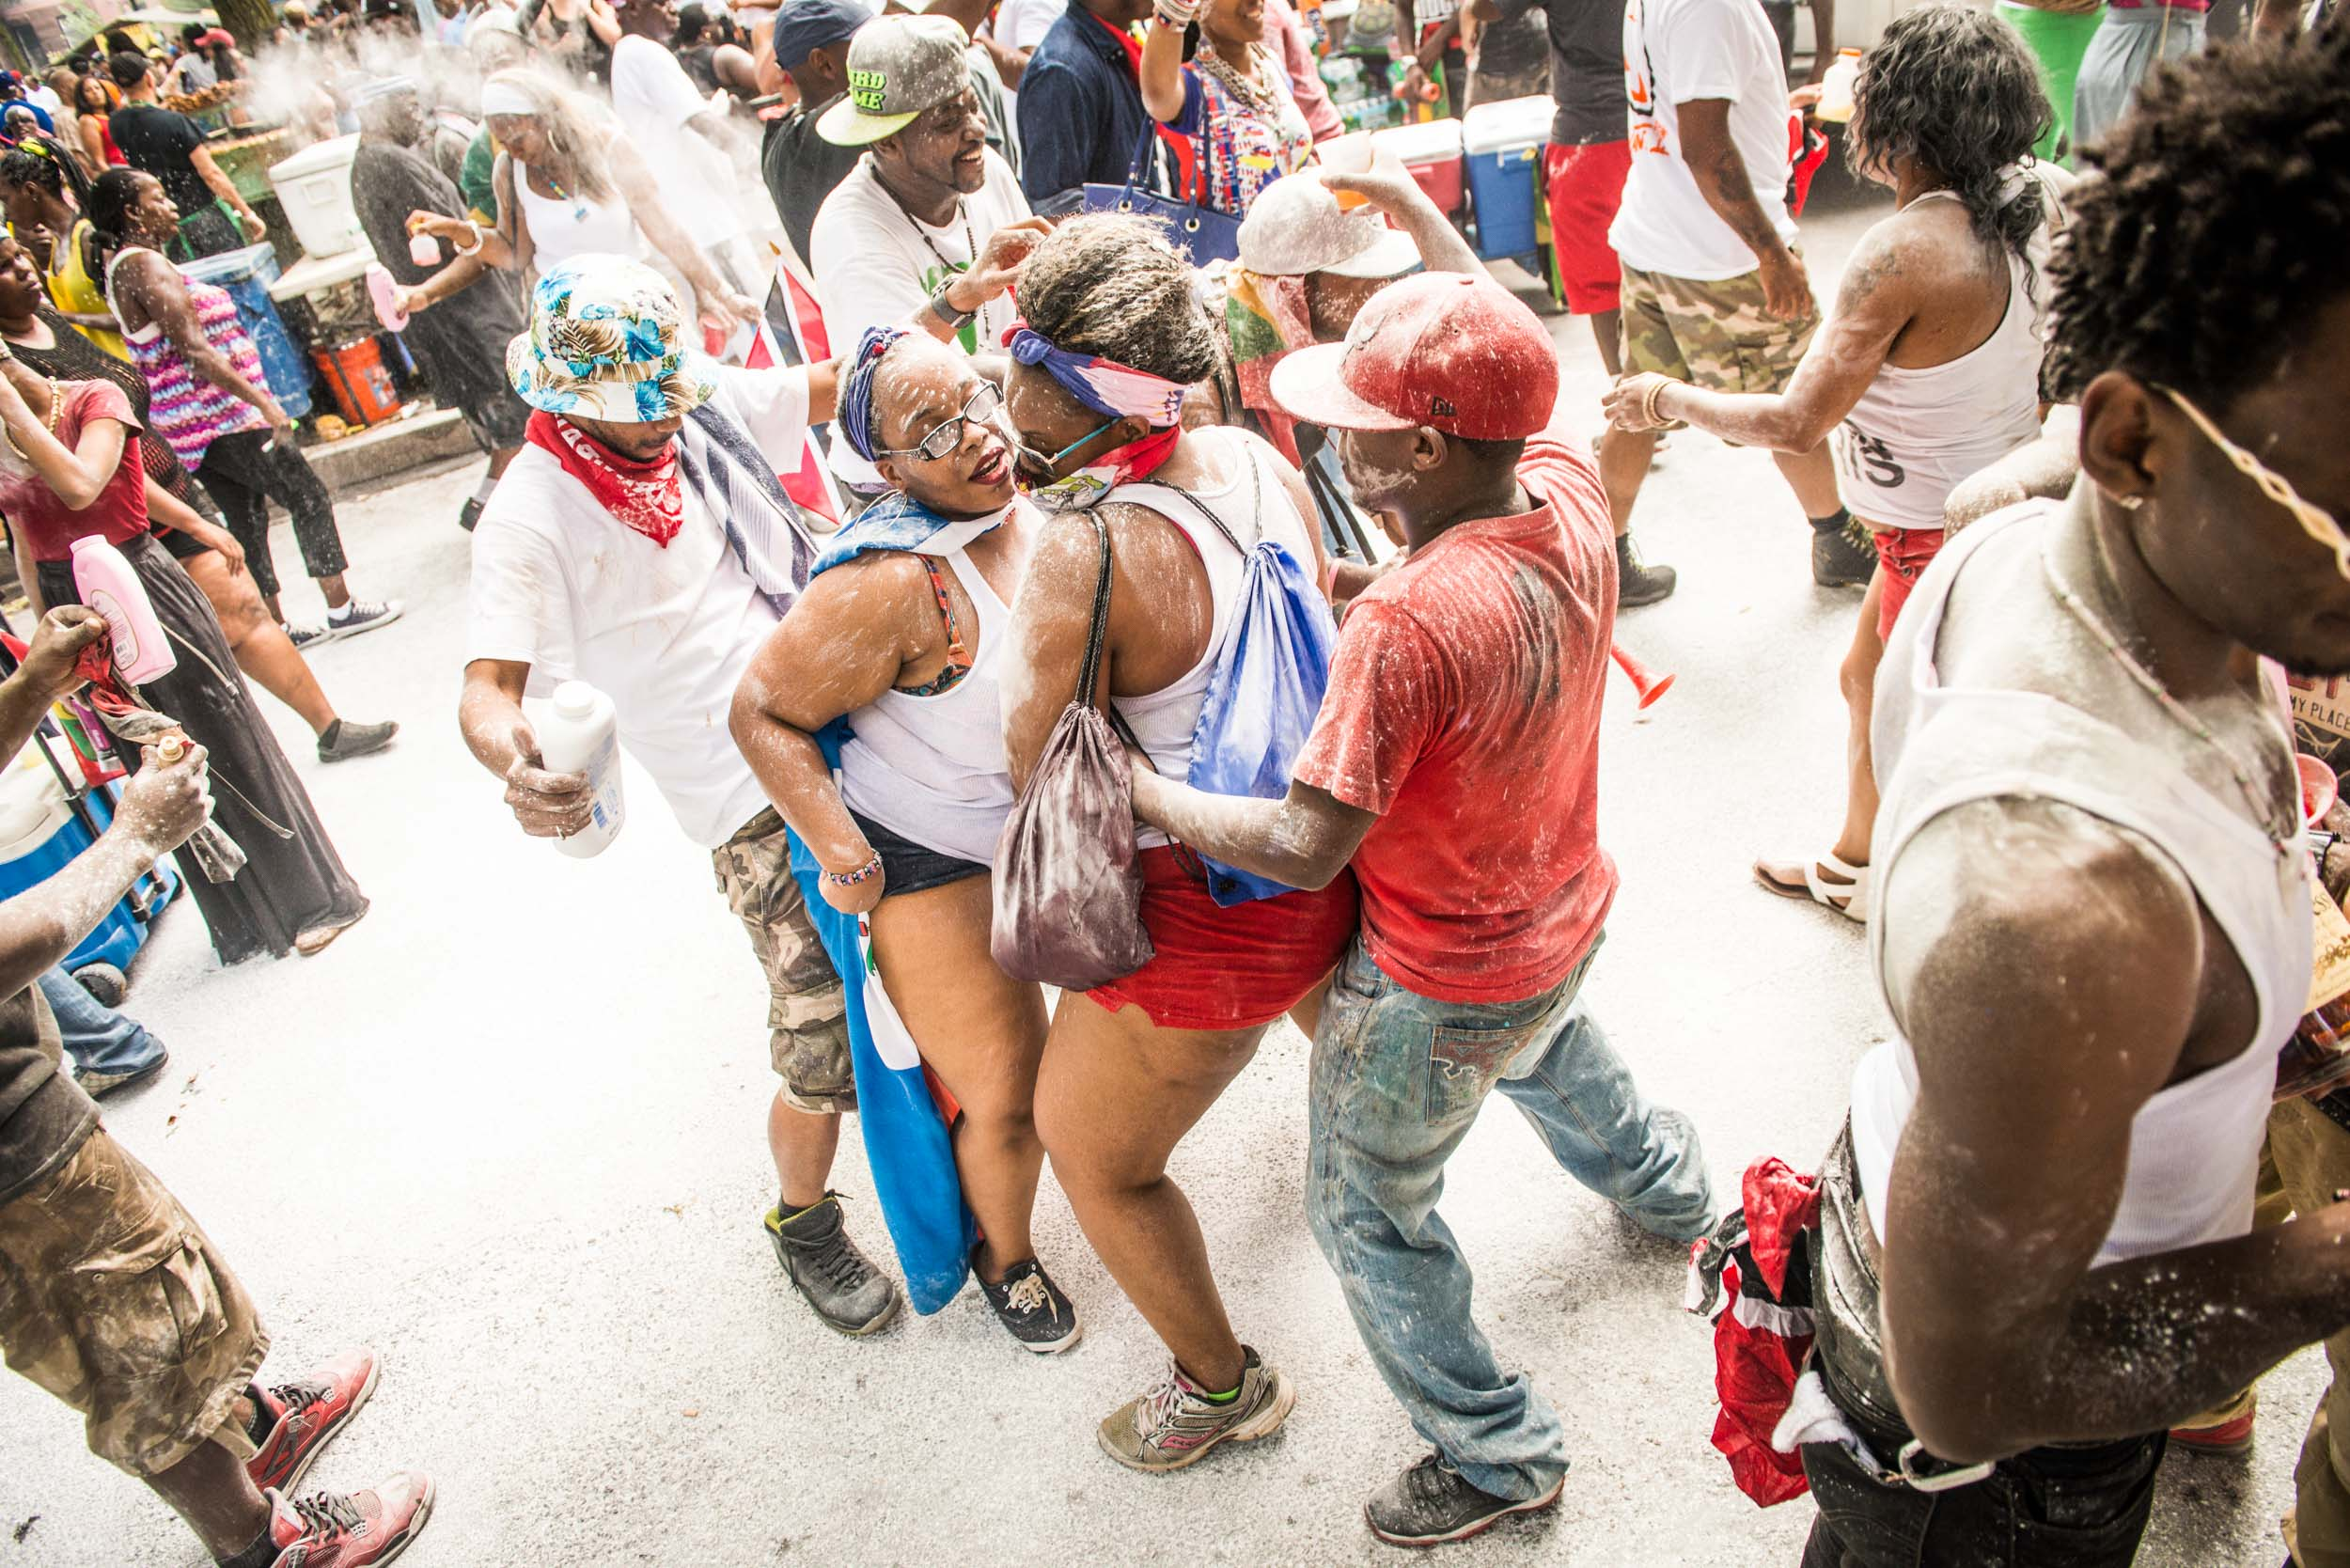 West Indian parade dancing - Current events - Photo credit Nicola Bailey.jpg